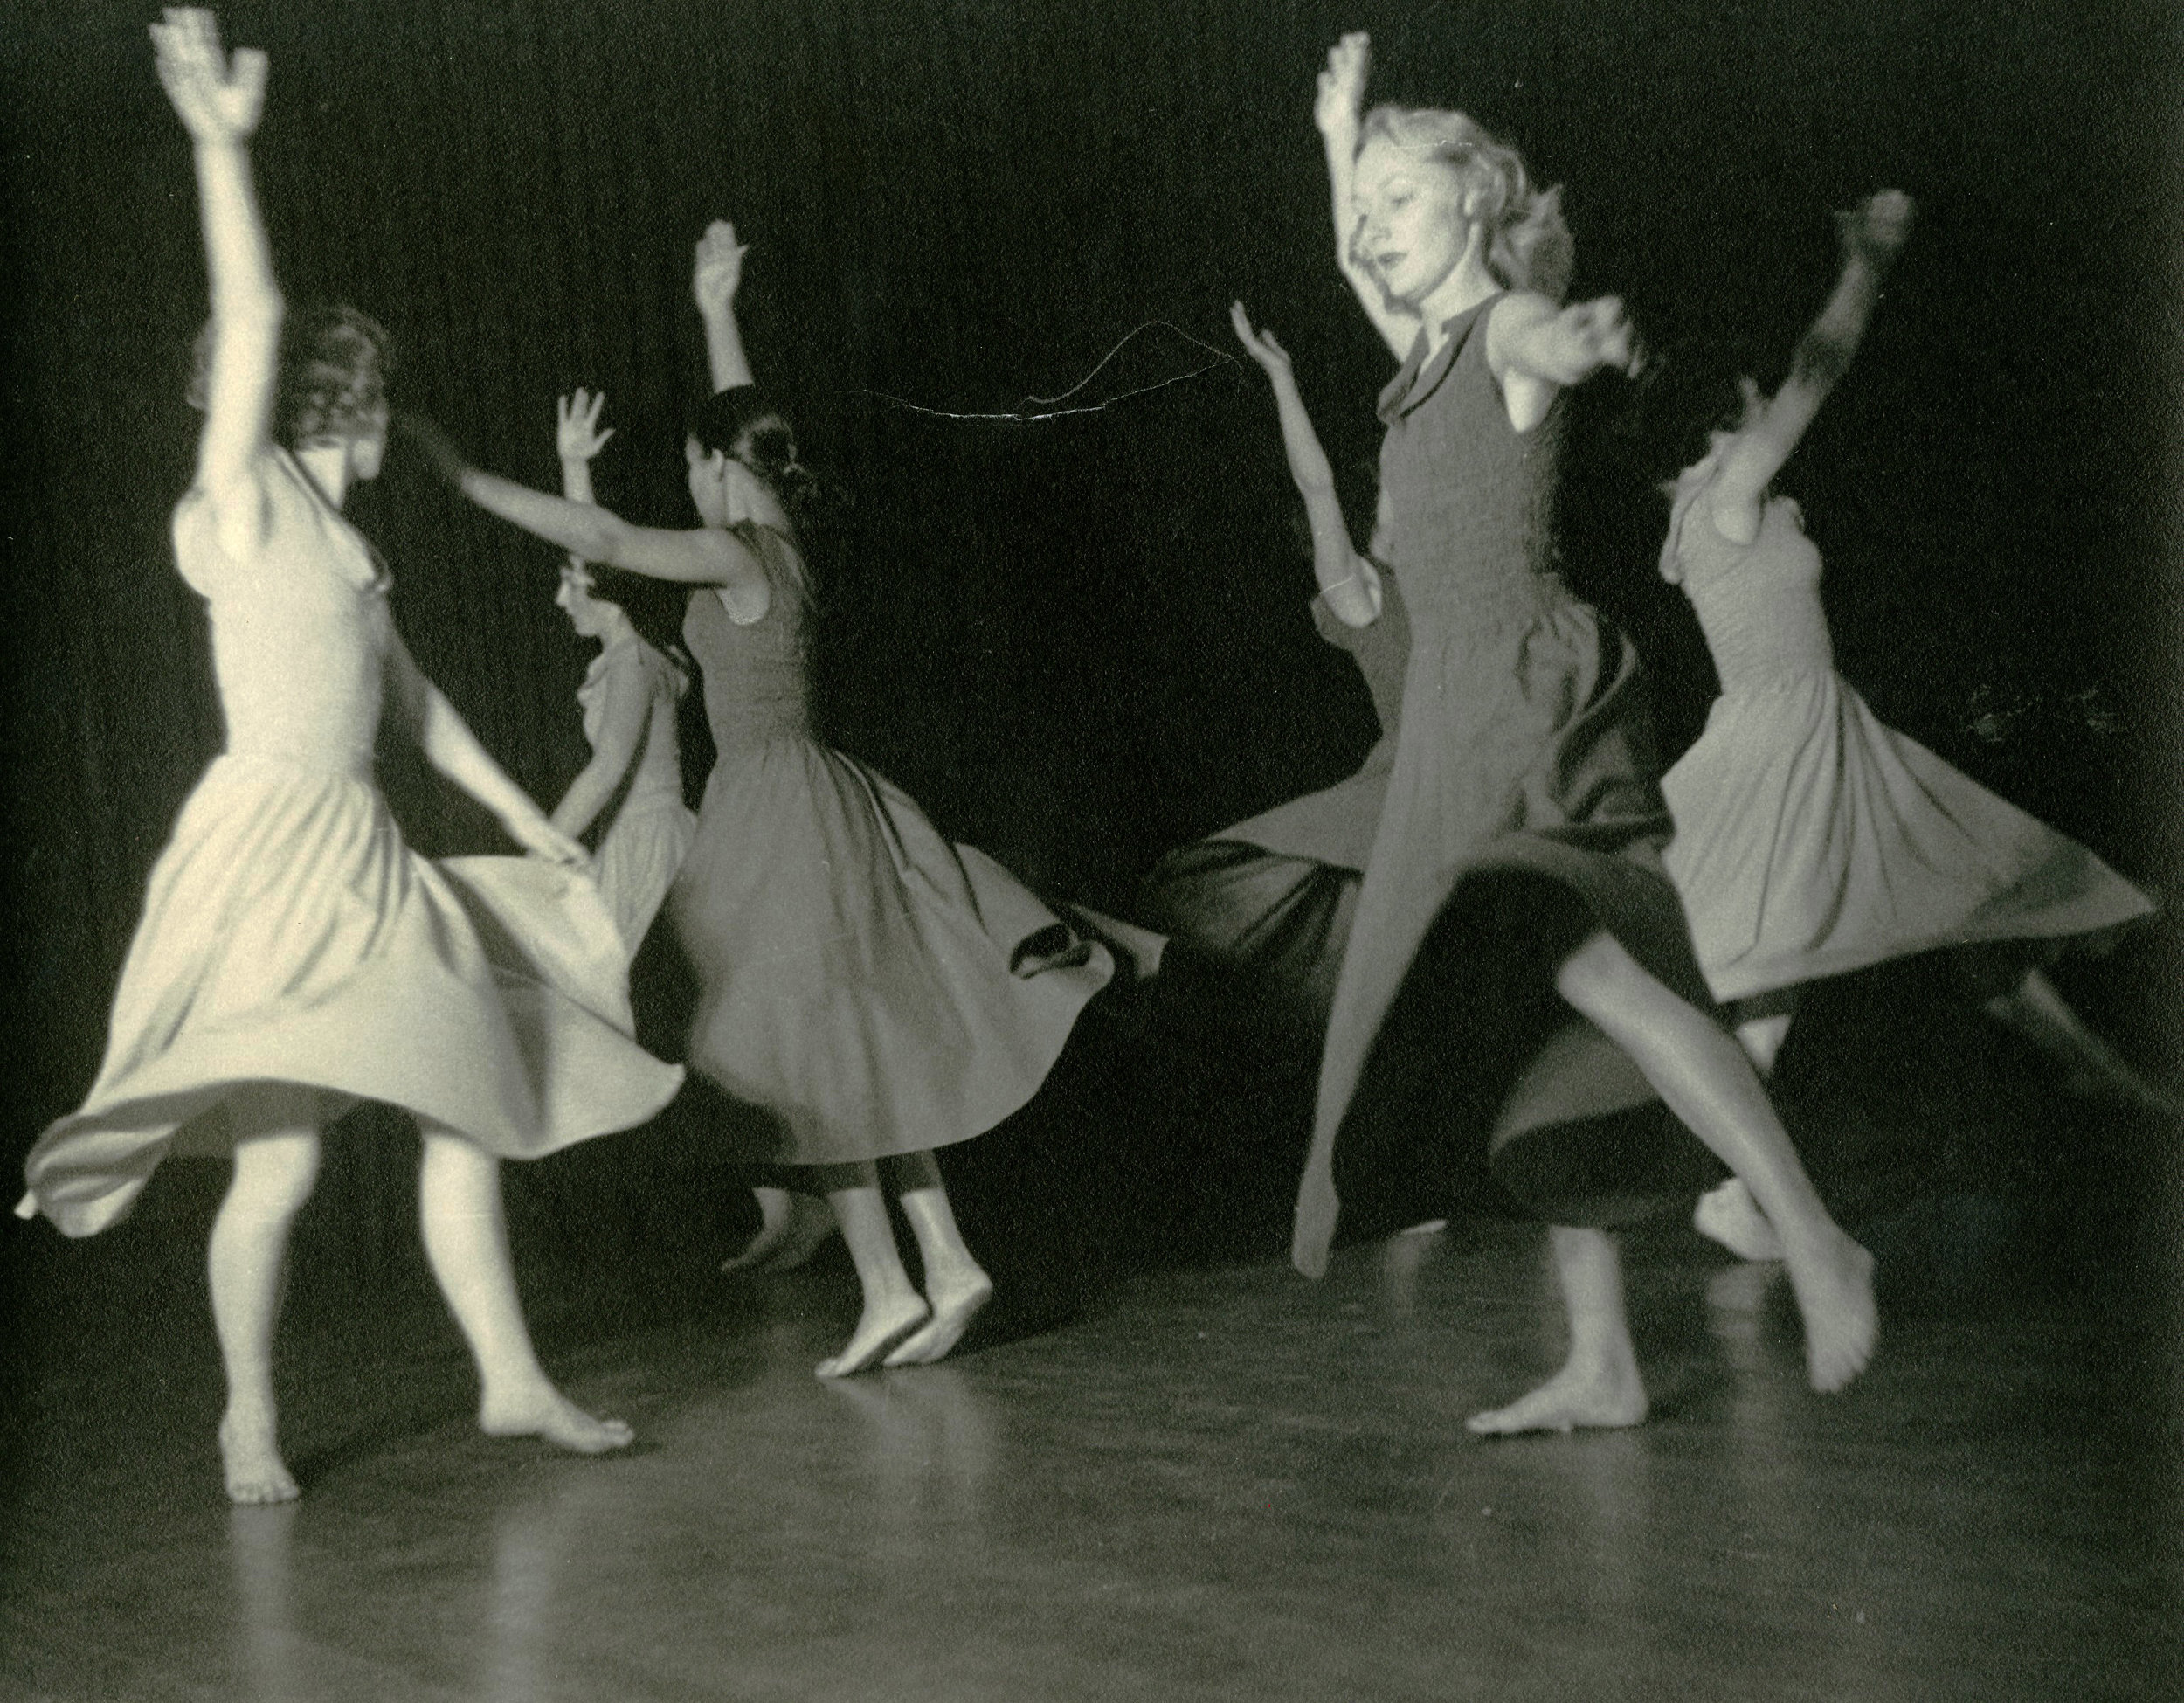 c1940s_le_valse_sara_miller_2nd_from_right.jpg